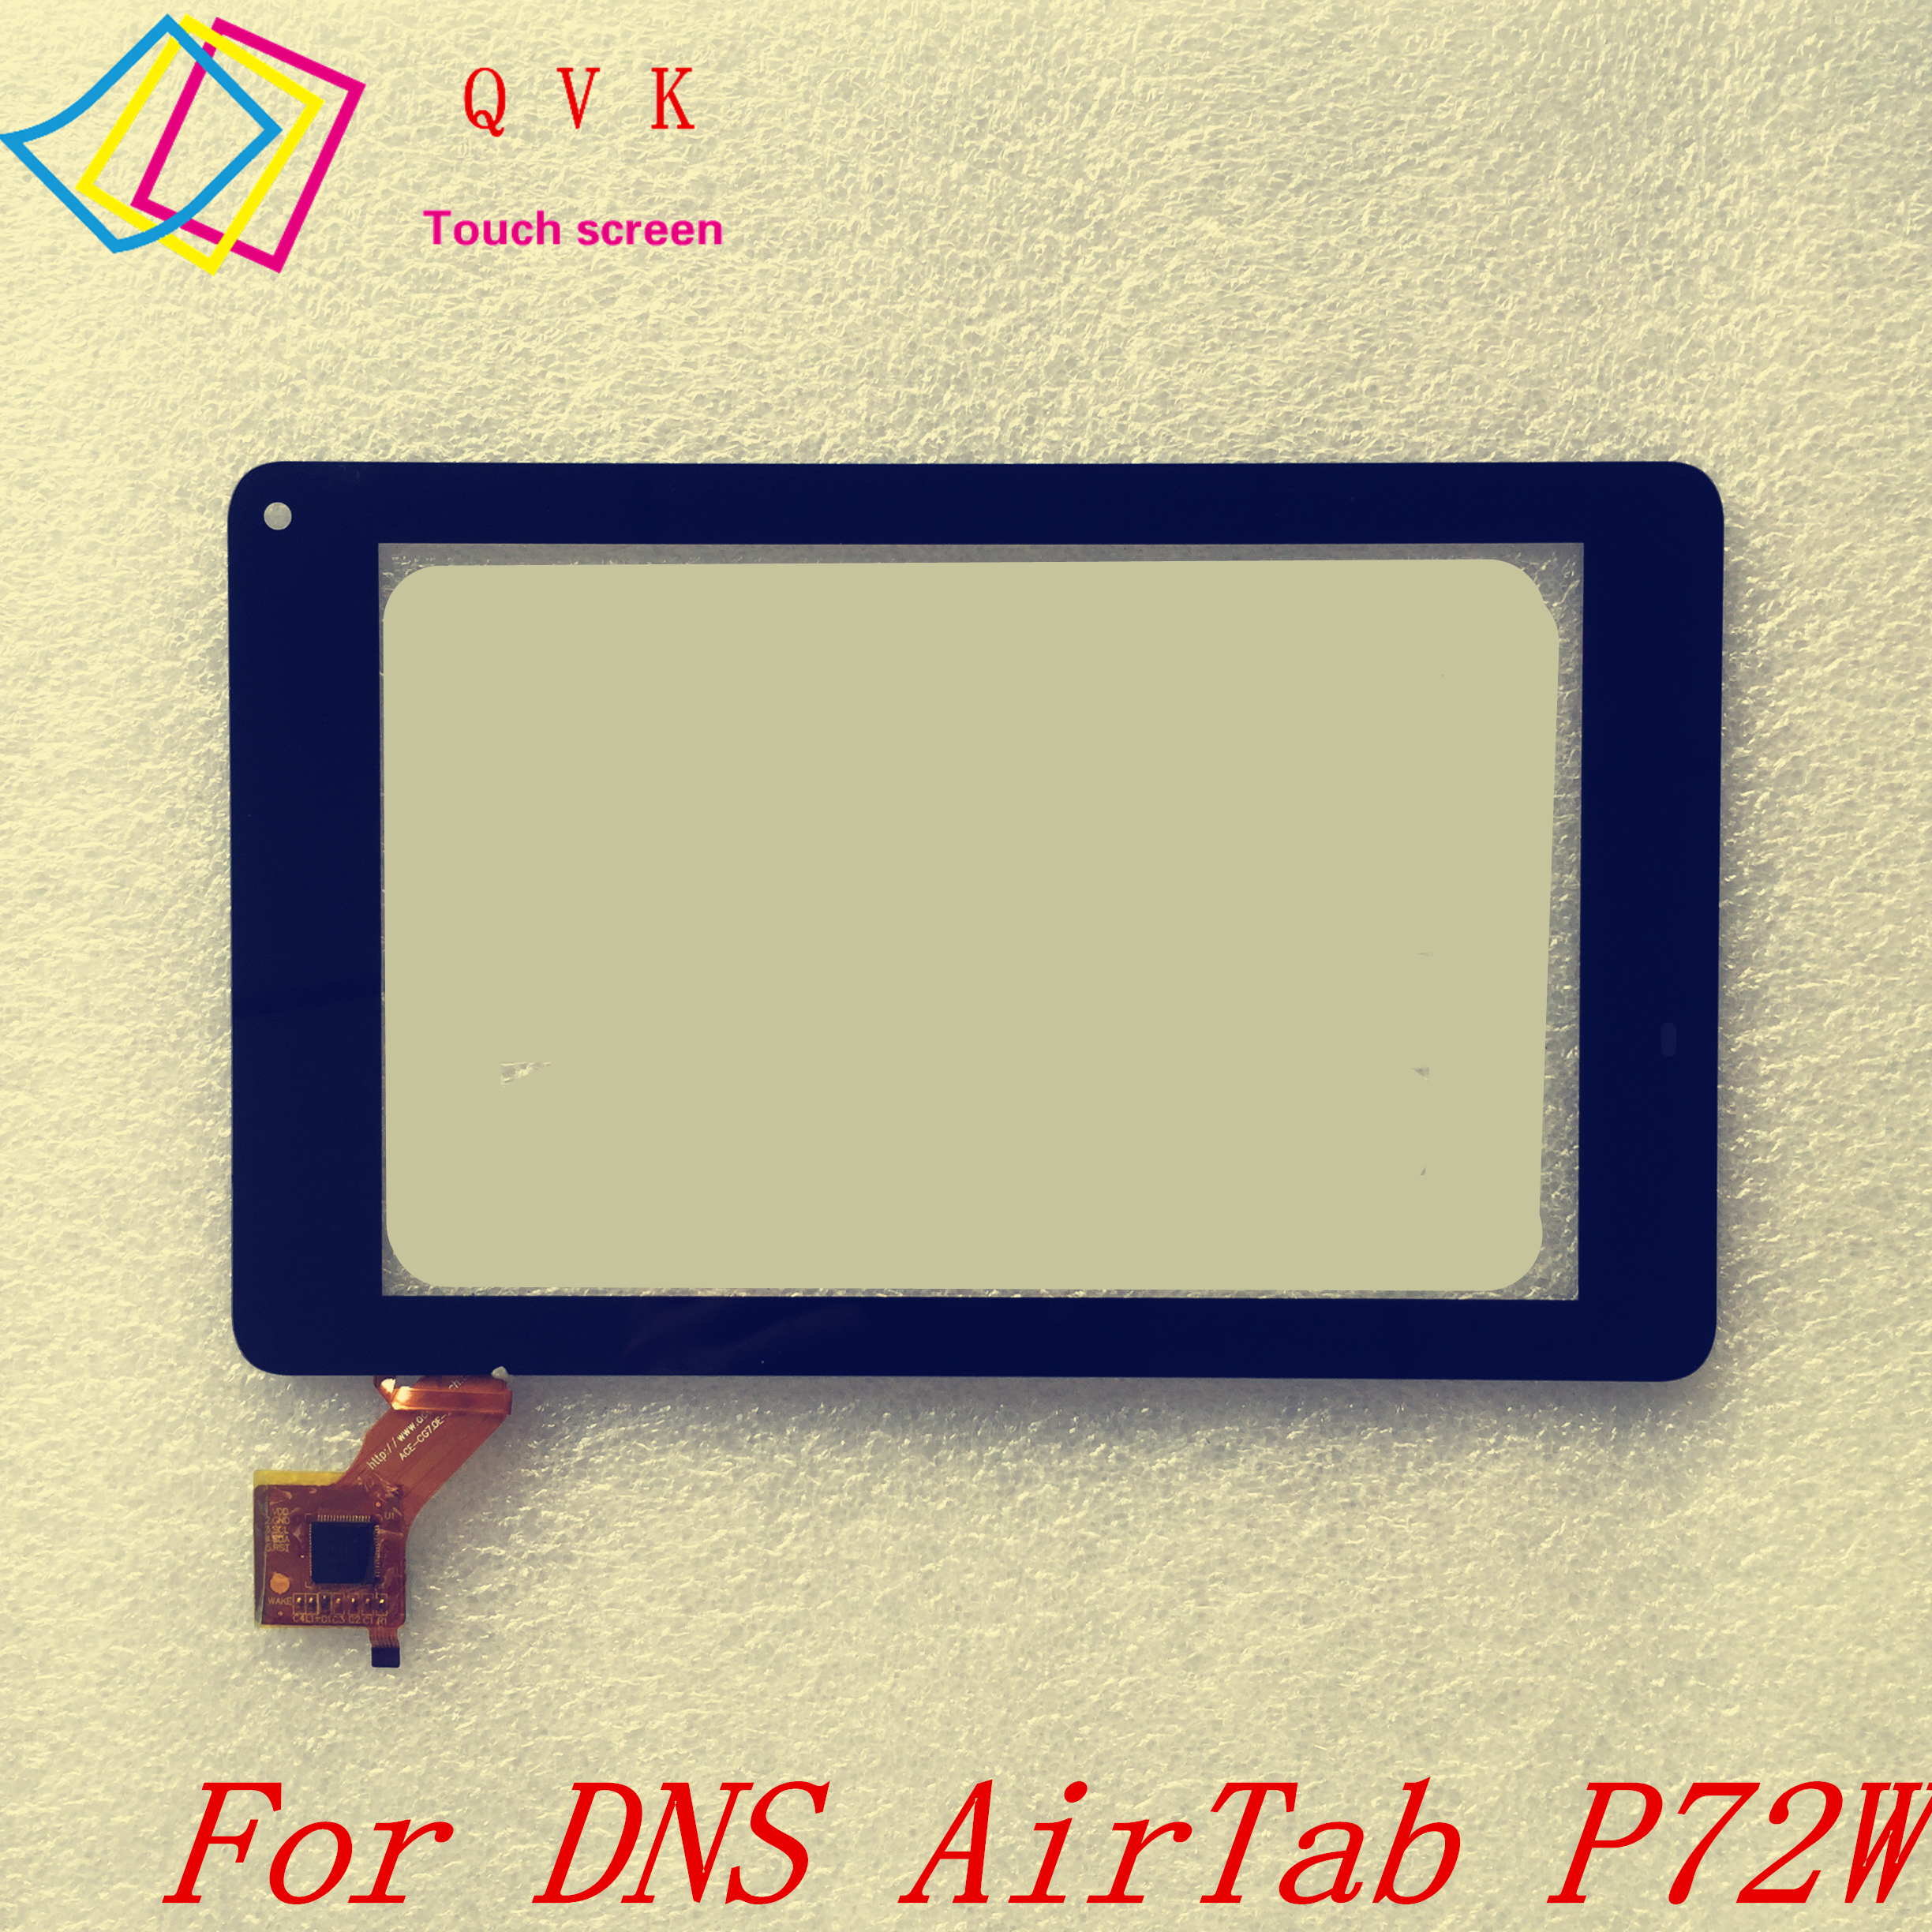 Black 7 Inch For DNS AirTab P72W Tablet Pc Capacitive Touch Screen Glass Digitizer Panel Free Shipping P/N Ace-CG7.0E-243